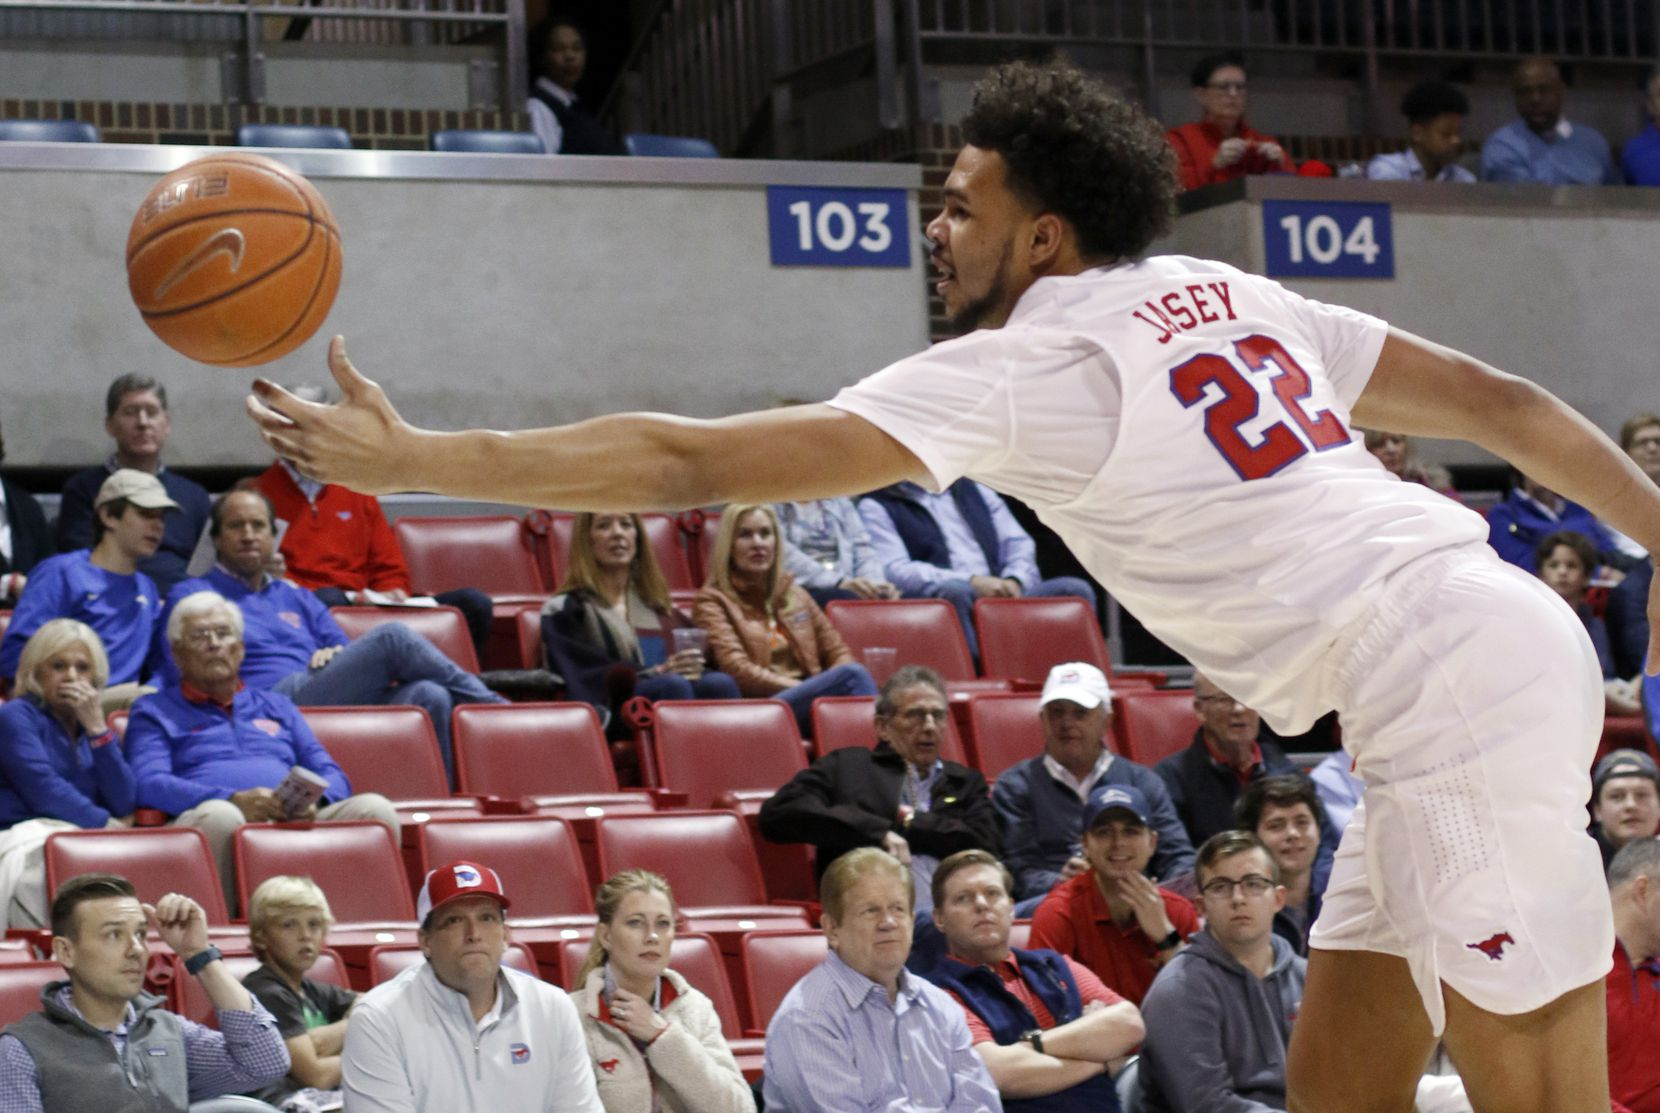 SMU forward Isiah Jasey (22) lunges to keep an errant pass alive during first half action against Memphis. SMU won 58-53. The two teams from the NCAA's American Athletic Conference played their men's basketball game at SMU's Moody Coliseum in Dallas on February 25, 2020.